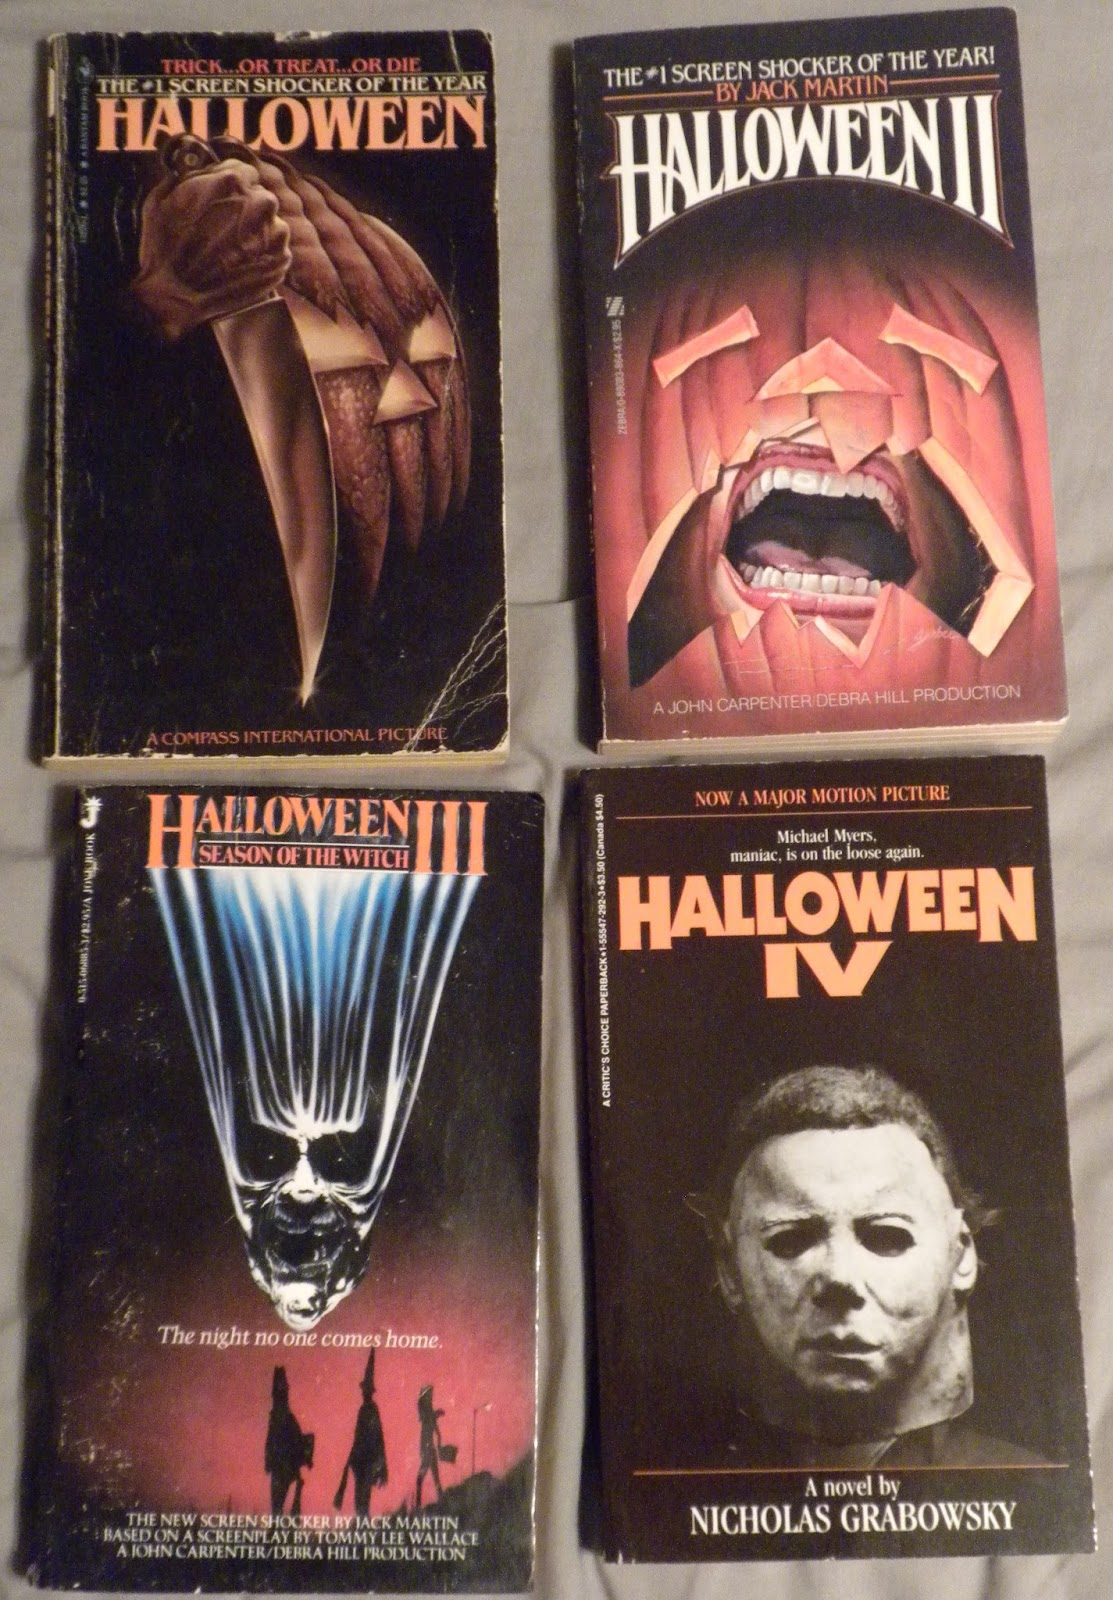 Halloween by curtis richards aka dennis etchison as seen in the above picture is a good example this one is likely one of the few novelizations based